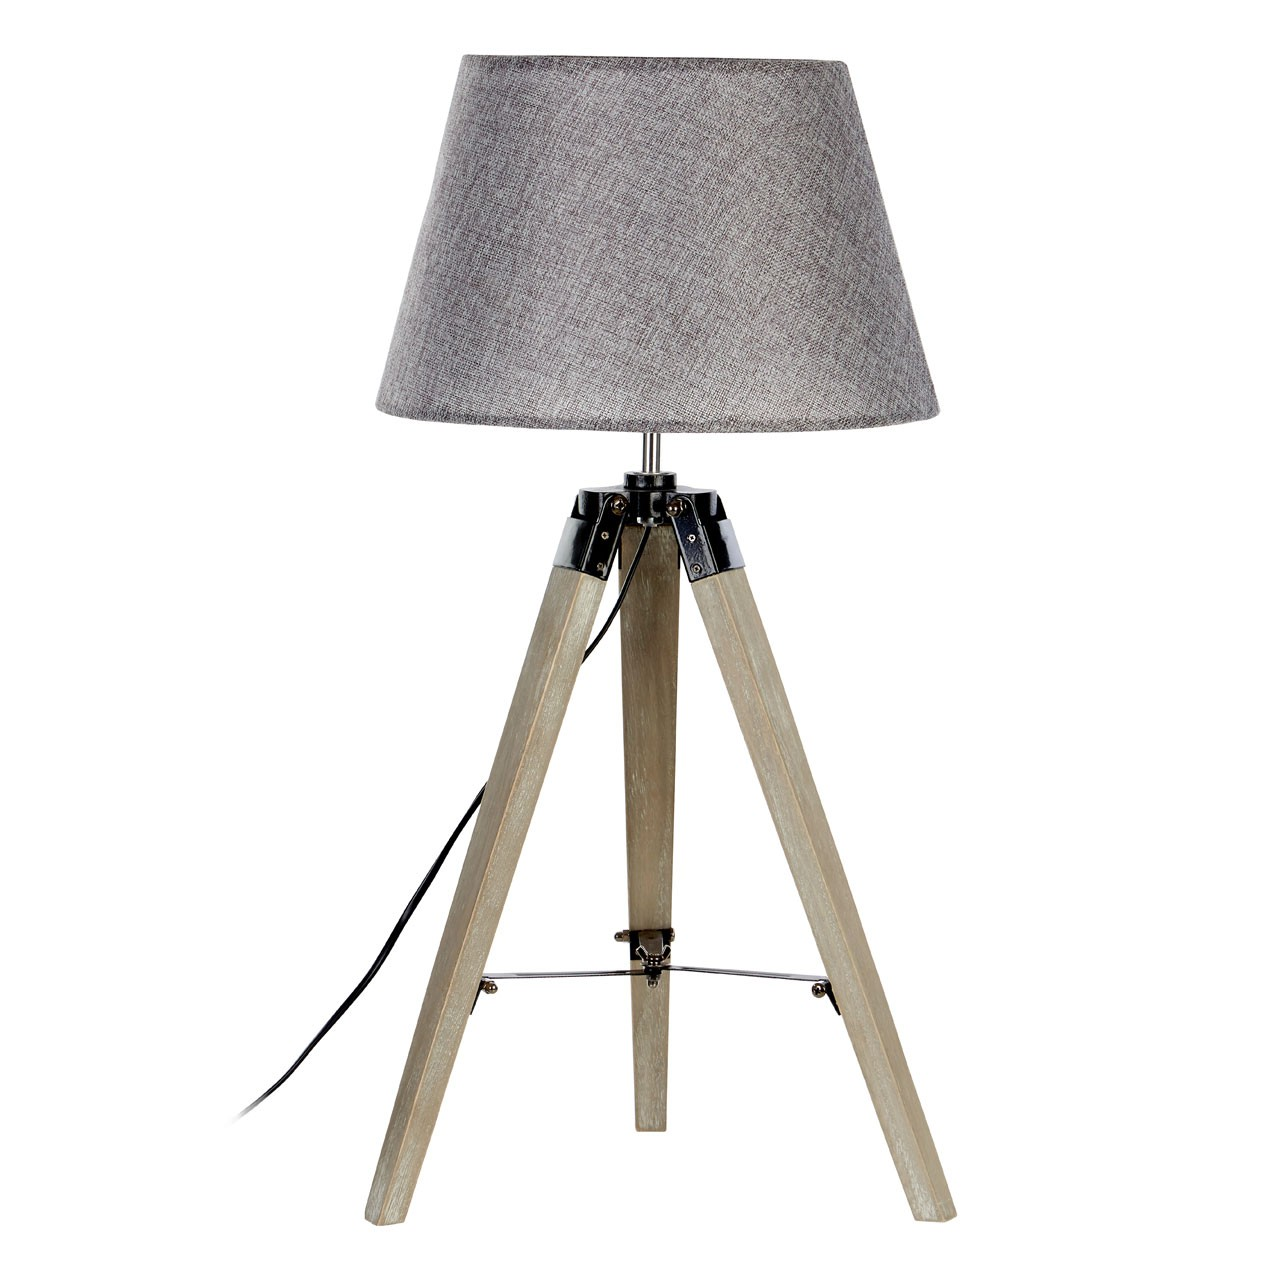 Prime Furnishing Harper Grey Wood Table Lamp, Tripod, Grey Shade